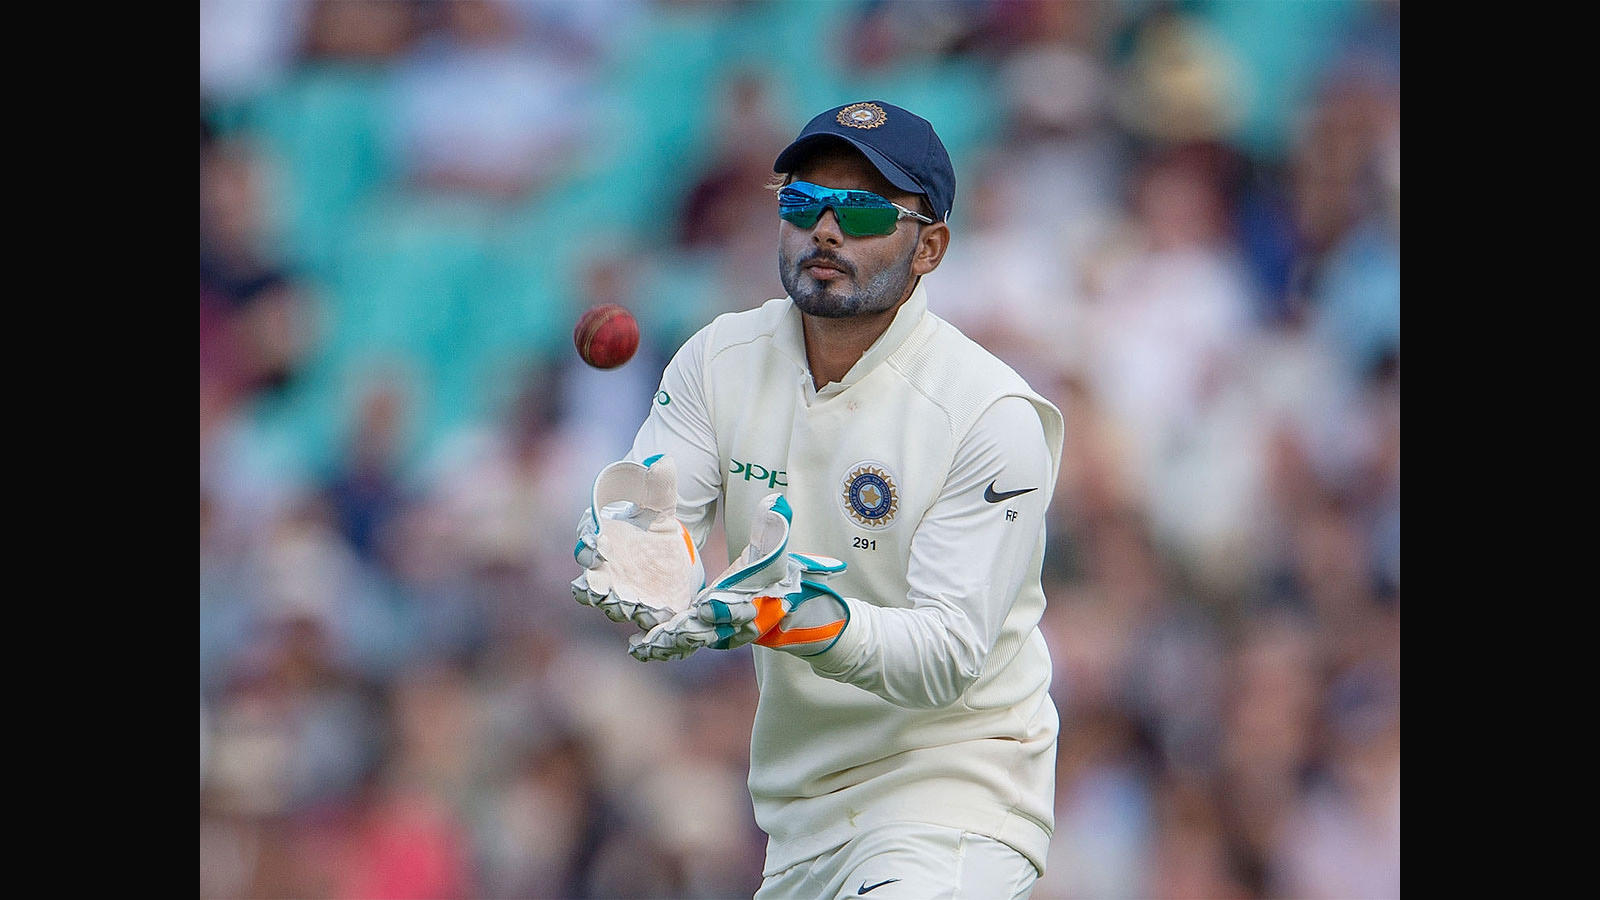 rishabh-pant-fastest-indian-stumper-to-claim-50-wicket-keeping-dismissals-in-test-cricket